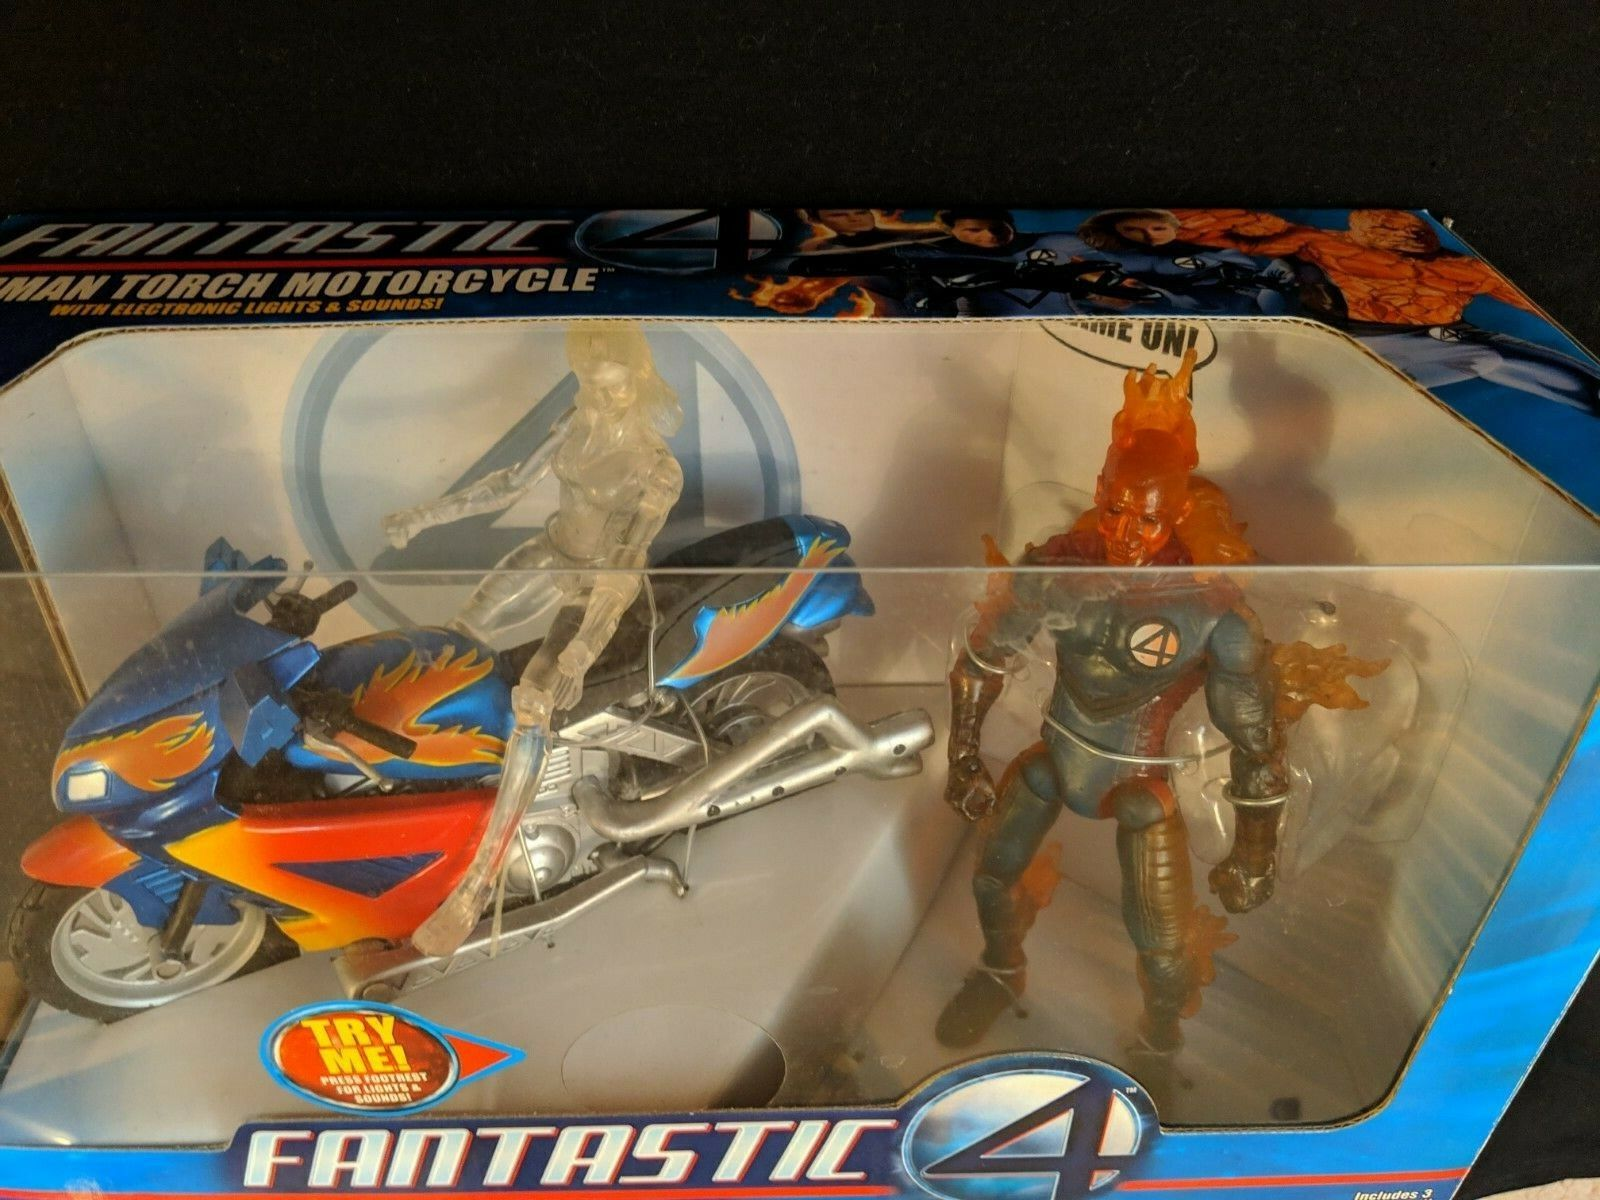 Marvel Legends fantastic 4 Human Torch Motor Cycle plus Invisible girl chase